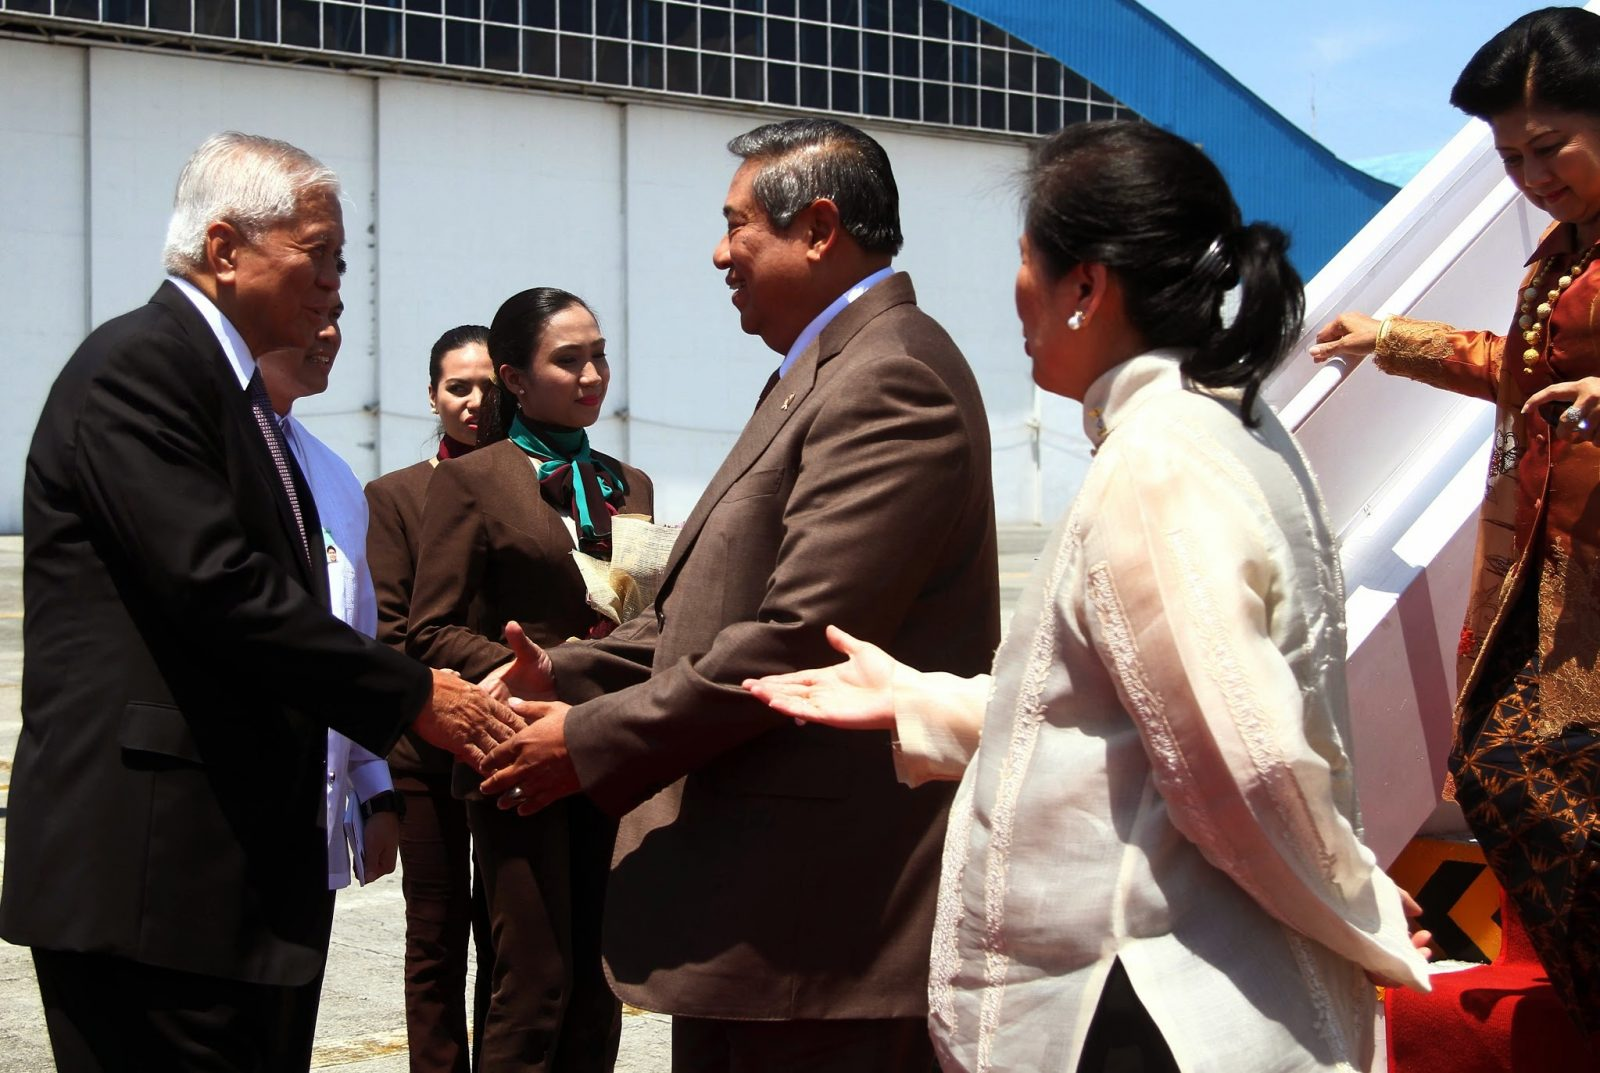 President of the Republic of Indonesia His Excellency Dr. Susilo Bambang Yudhoyono and Mrs Ani Bambang Yudhoyono are welcomed by Department of Foreign Affairs (DFA) Secretary Albert del Rosario upon their arrival at the Bulwagang Kalayaan, Villamor Air Base in Pasay City on Thursday (May 22). (Photo by Marcelino G. Pascua)